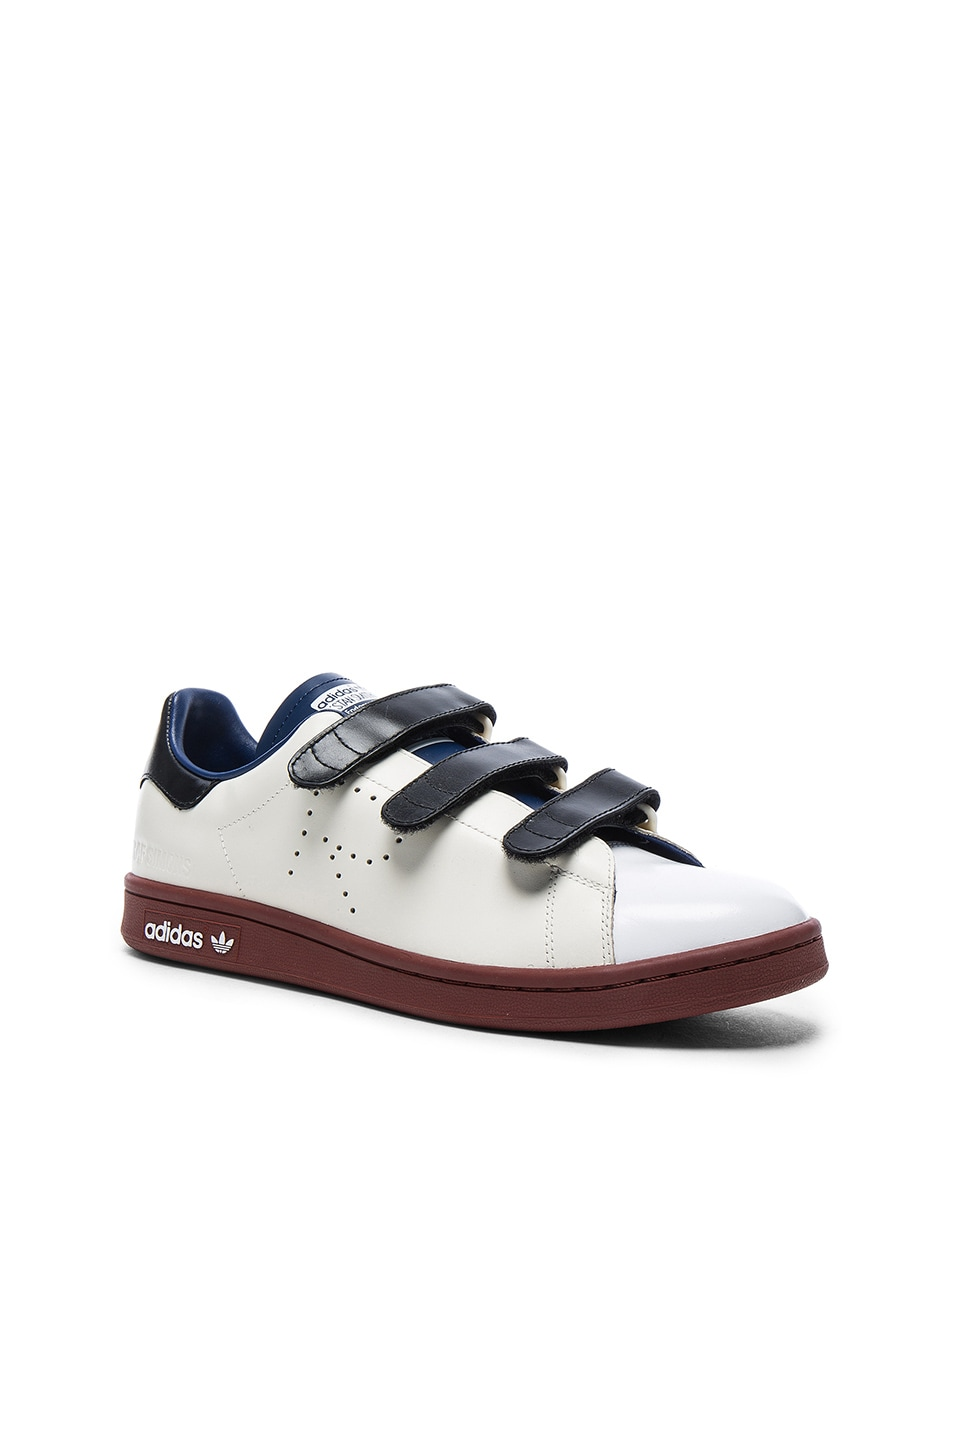 low cost f5f91 16859 Image 1 of Raf Simons x Adidas Leather Stan Smith Sneakers in Cream White,  Dark